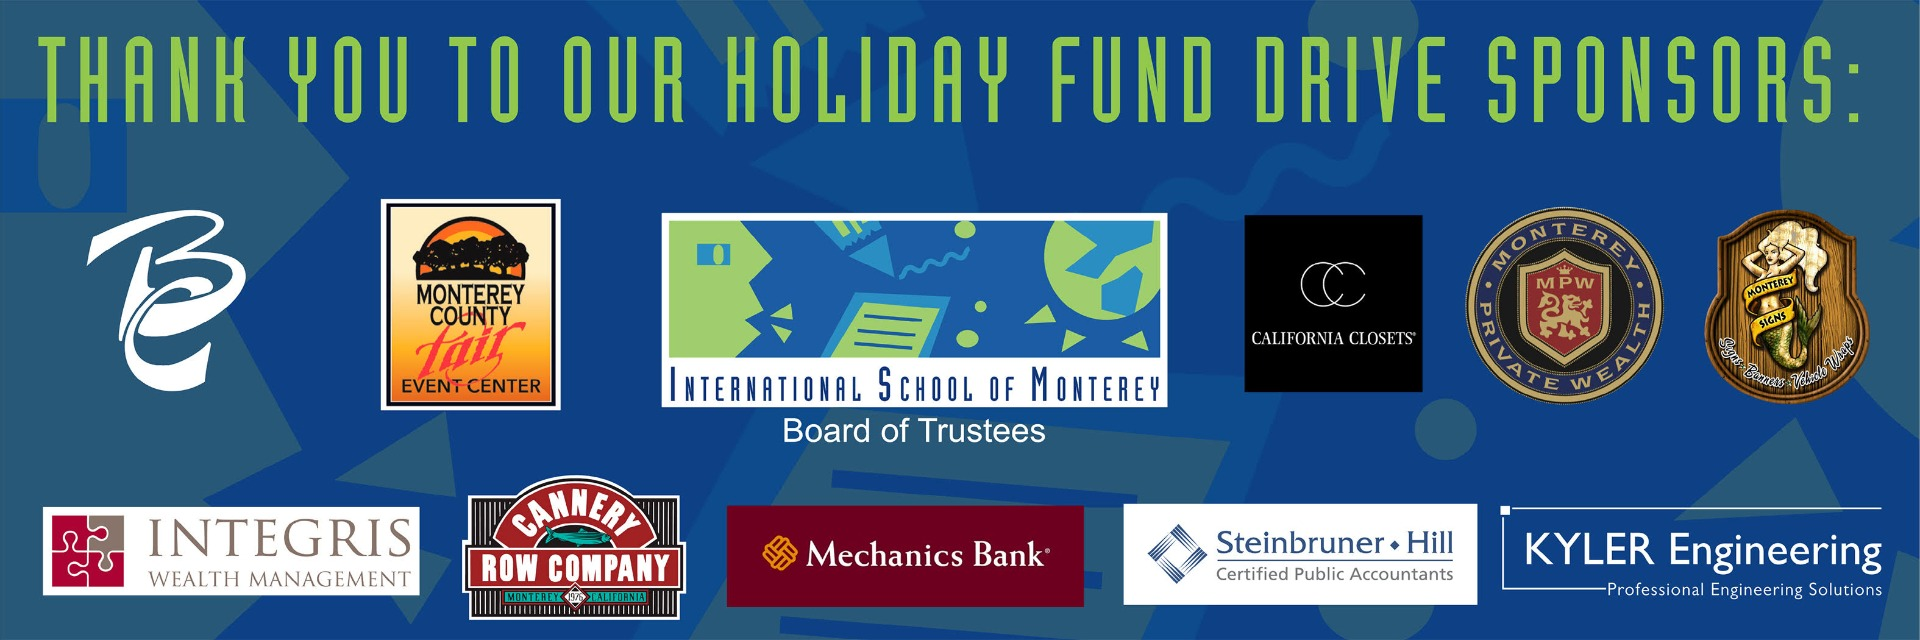 Thank you to our holiday fund drive sponsors.